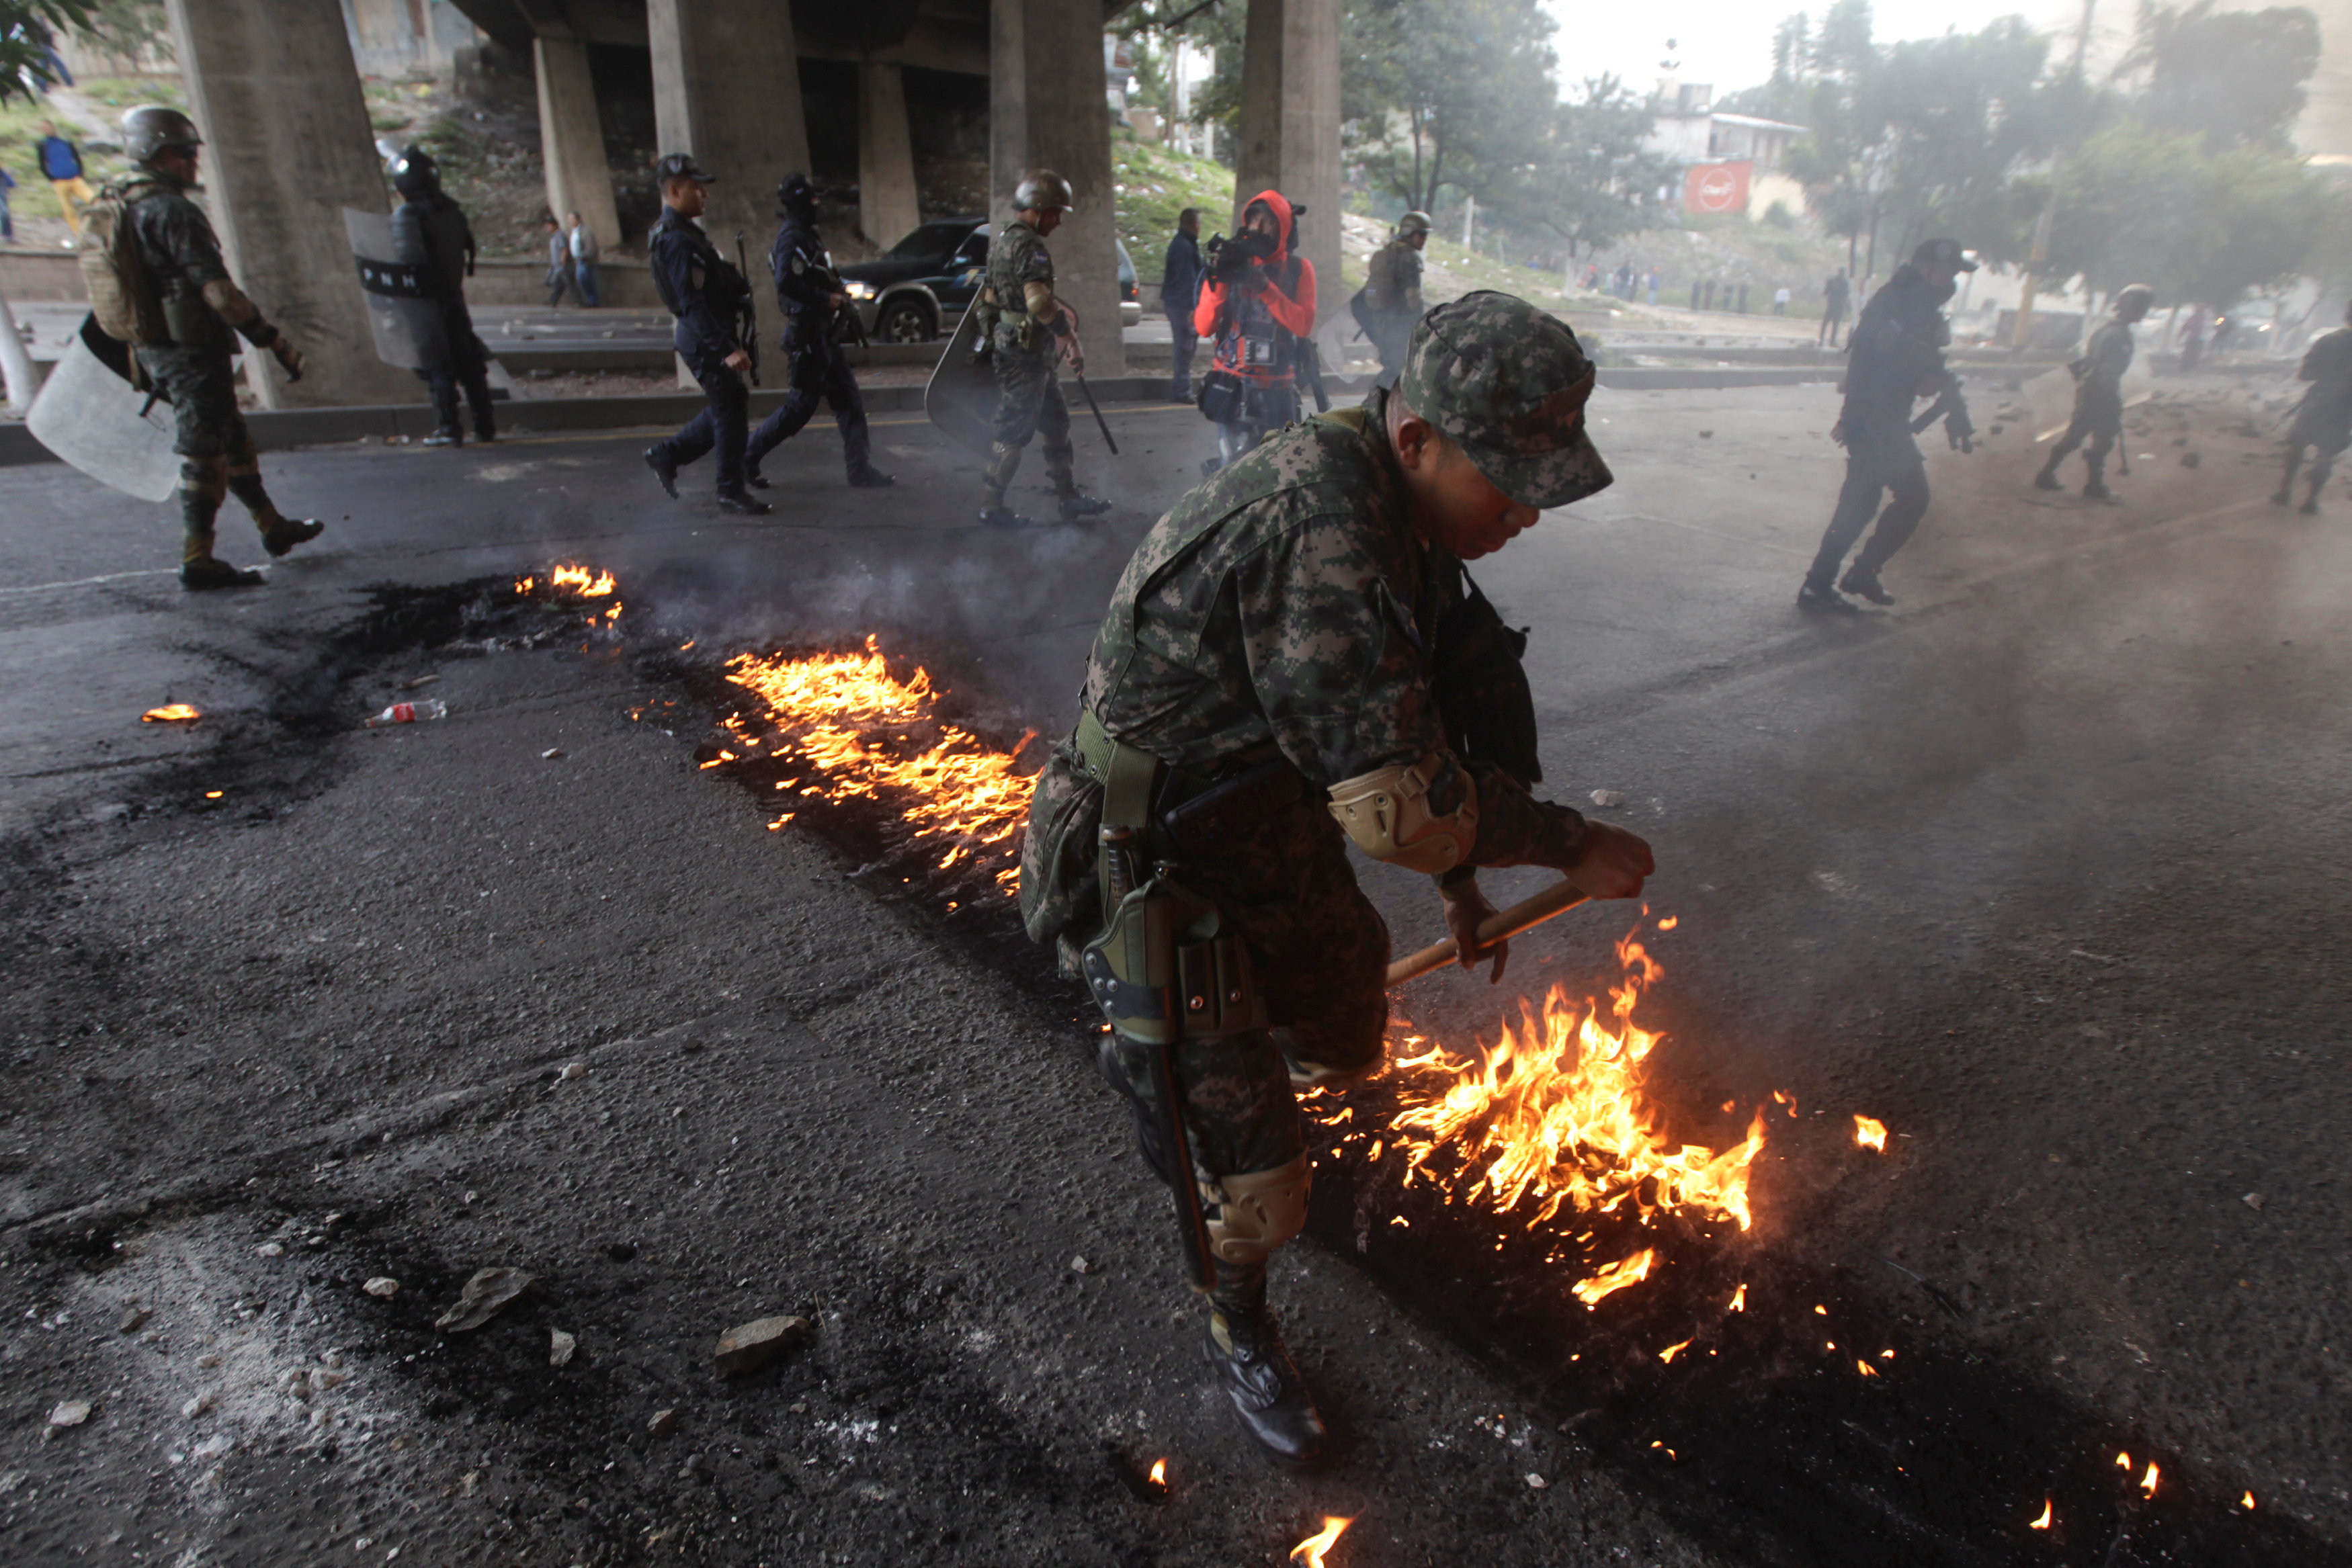 Army clears streets of protesters alleging poll fraud in Honduras